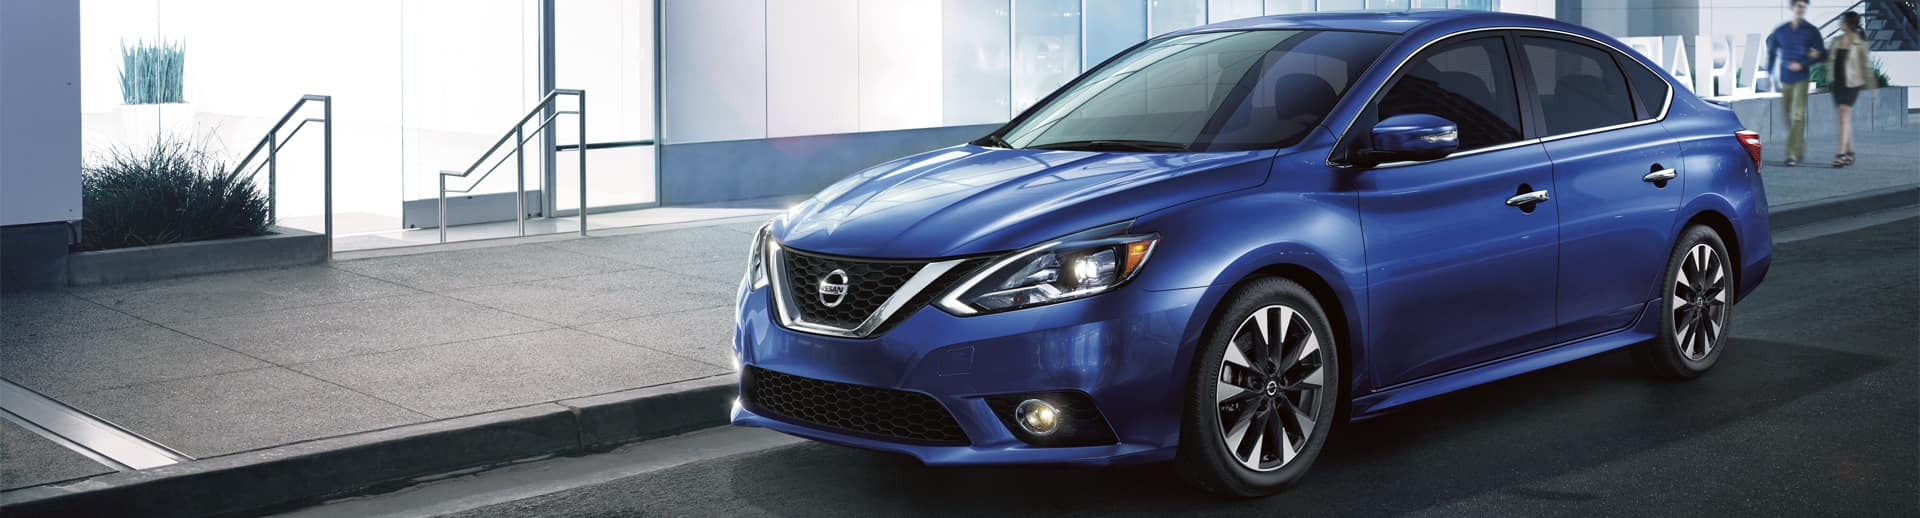 Nissan Sentra Service Manual: Front seat